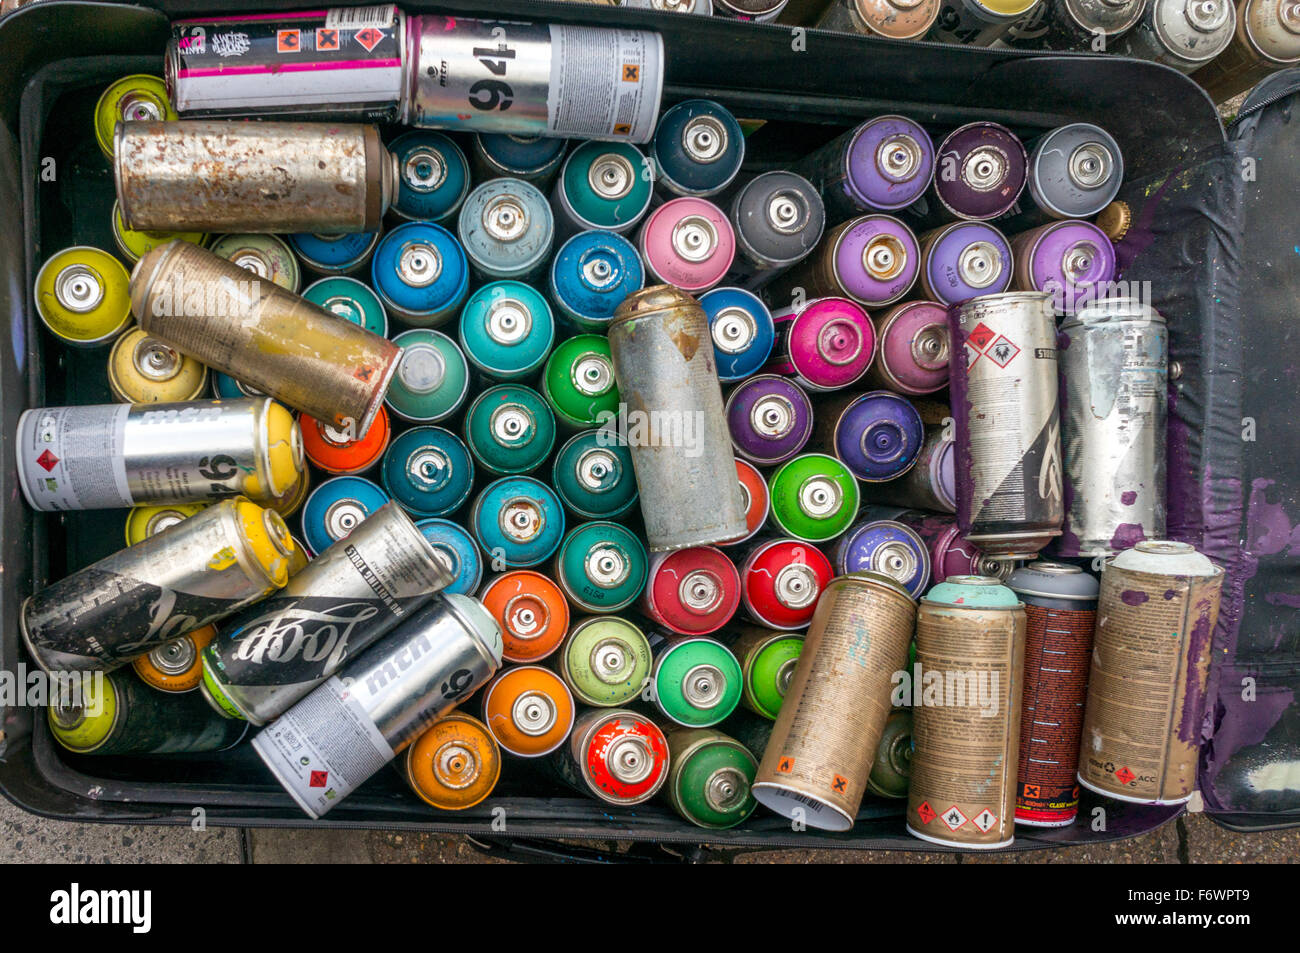 Spray Paint, Cans - Stock Image